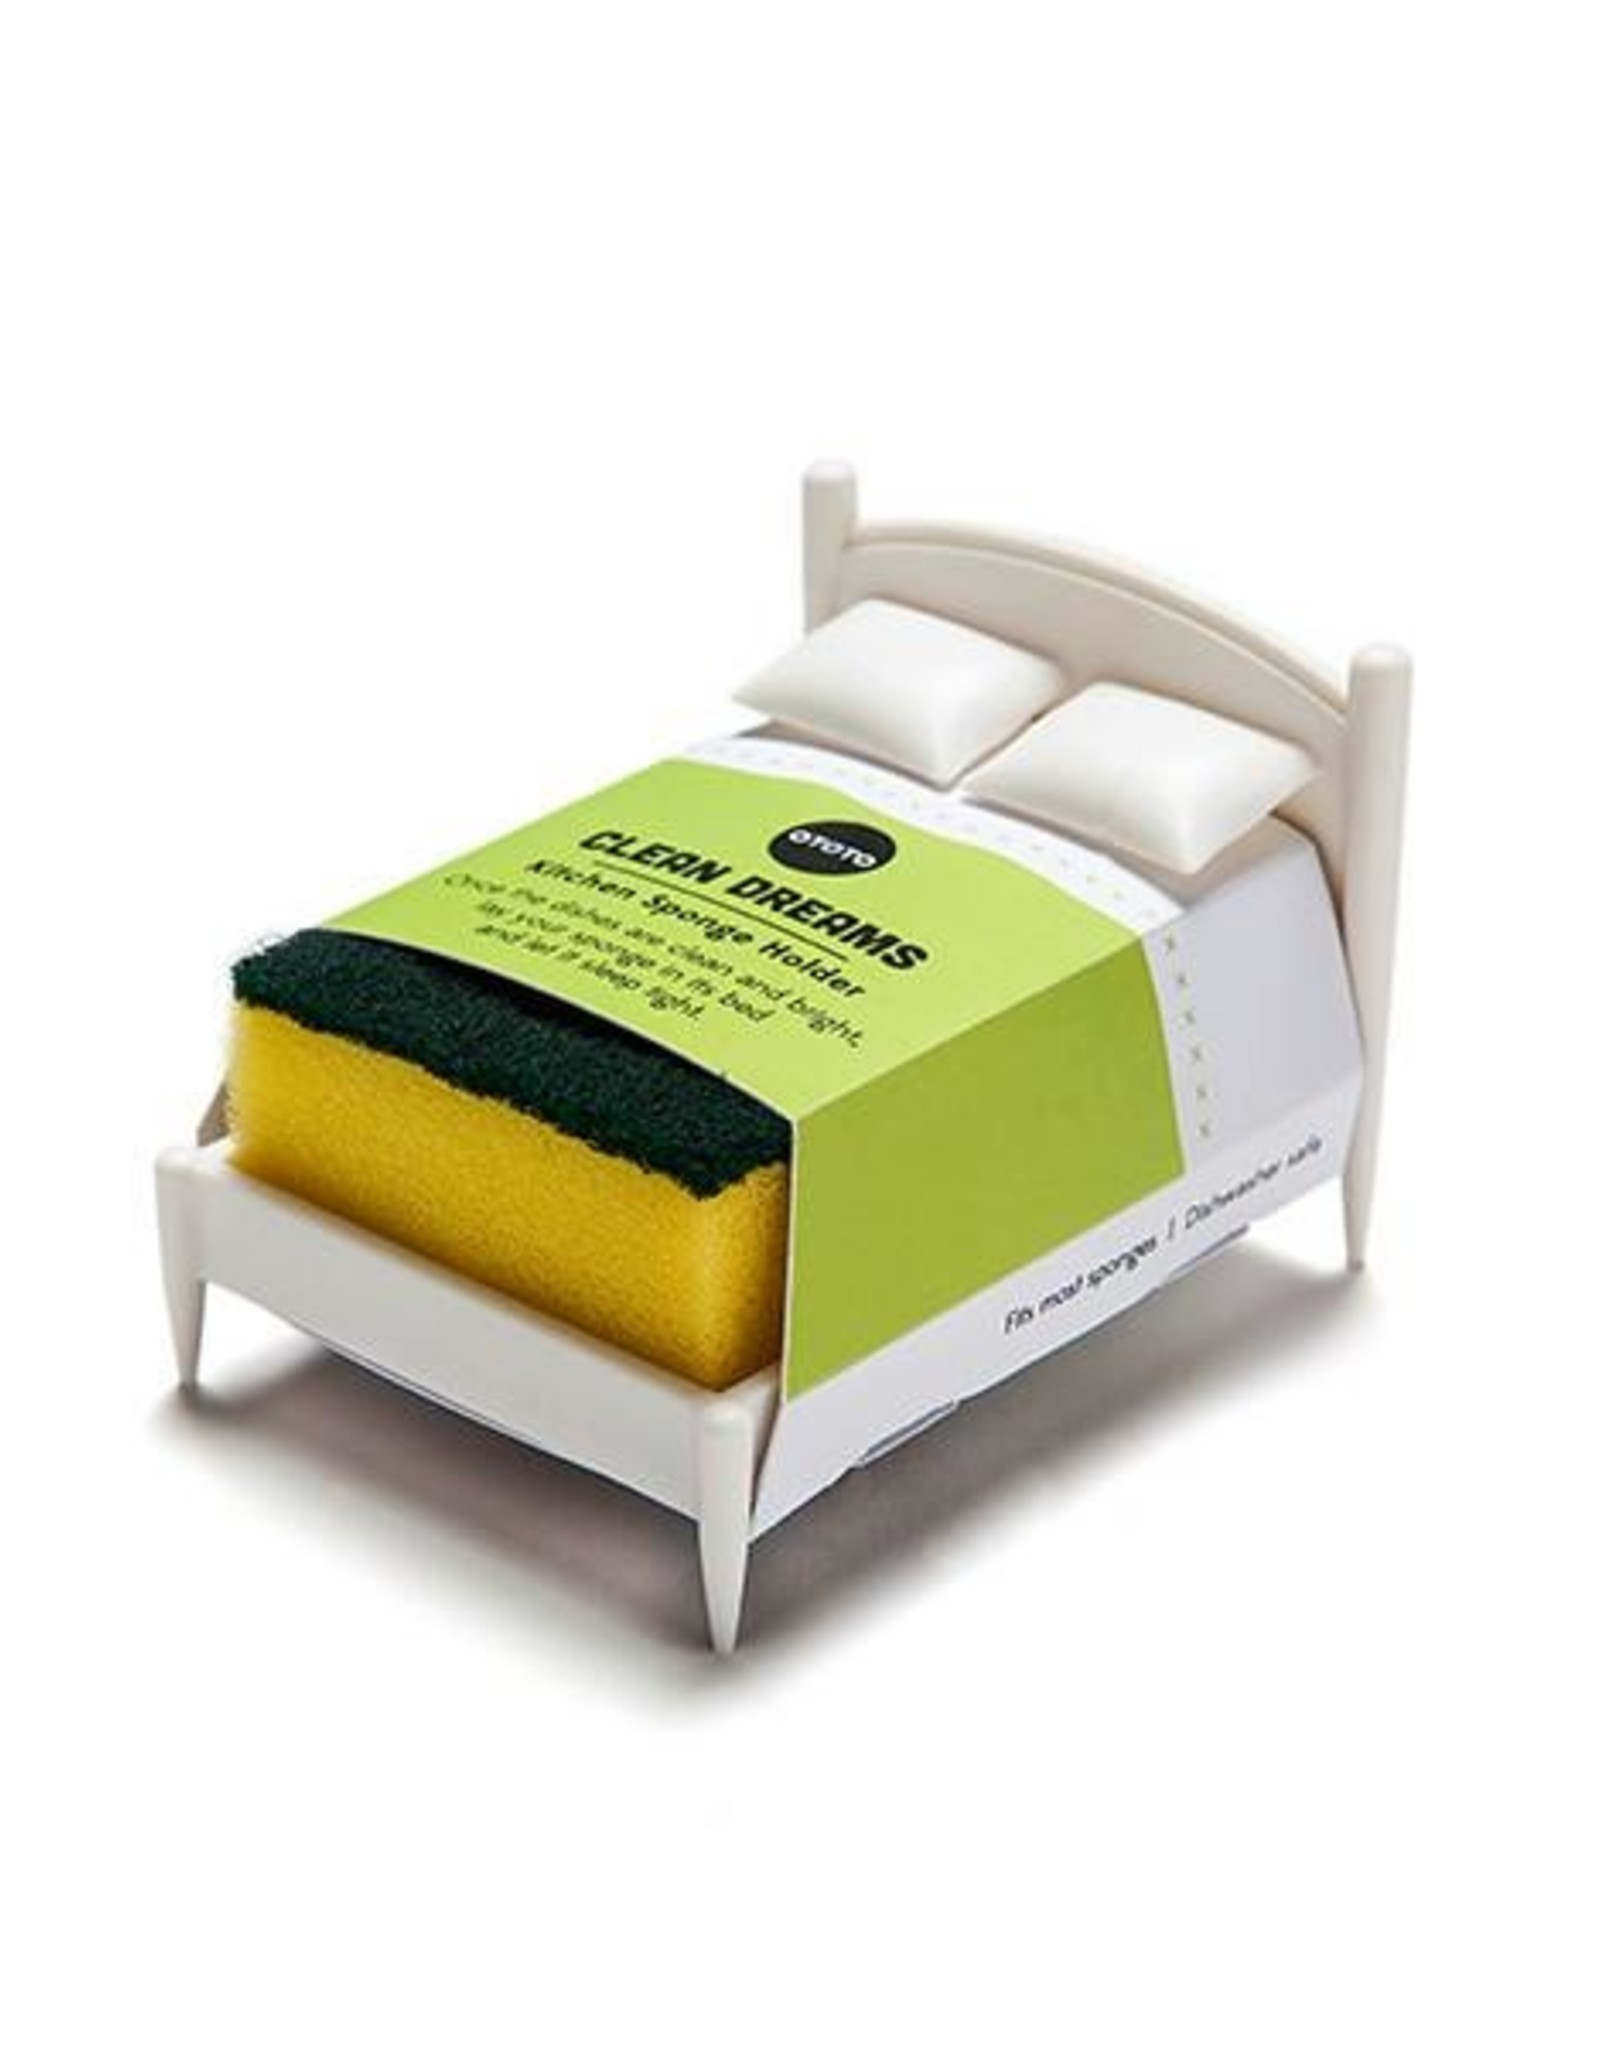 Clean Dreams Sponge Holder